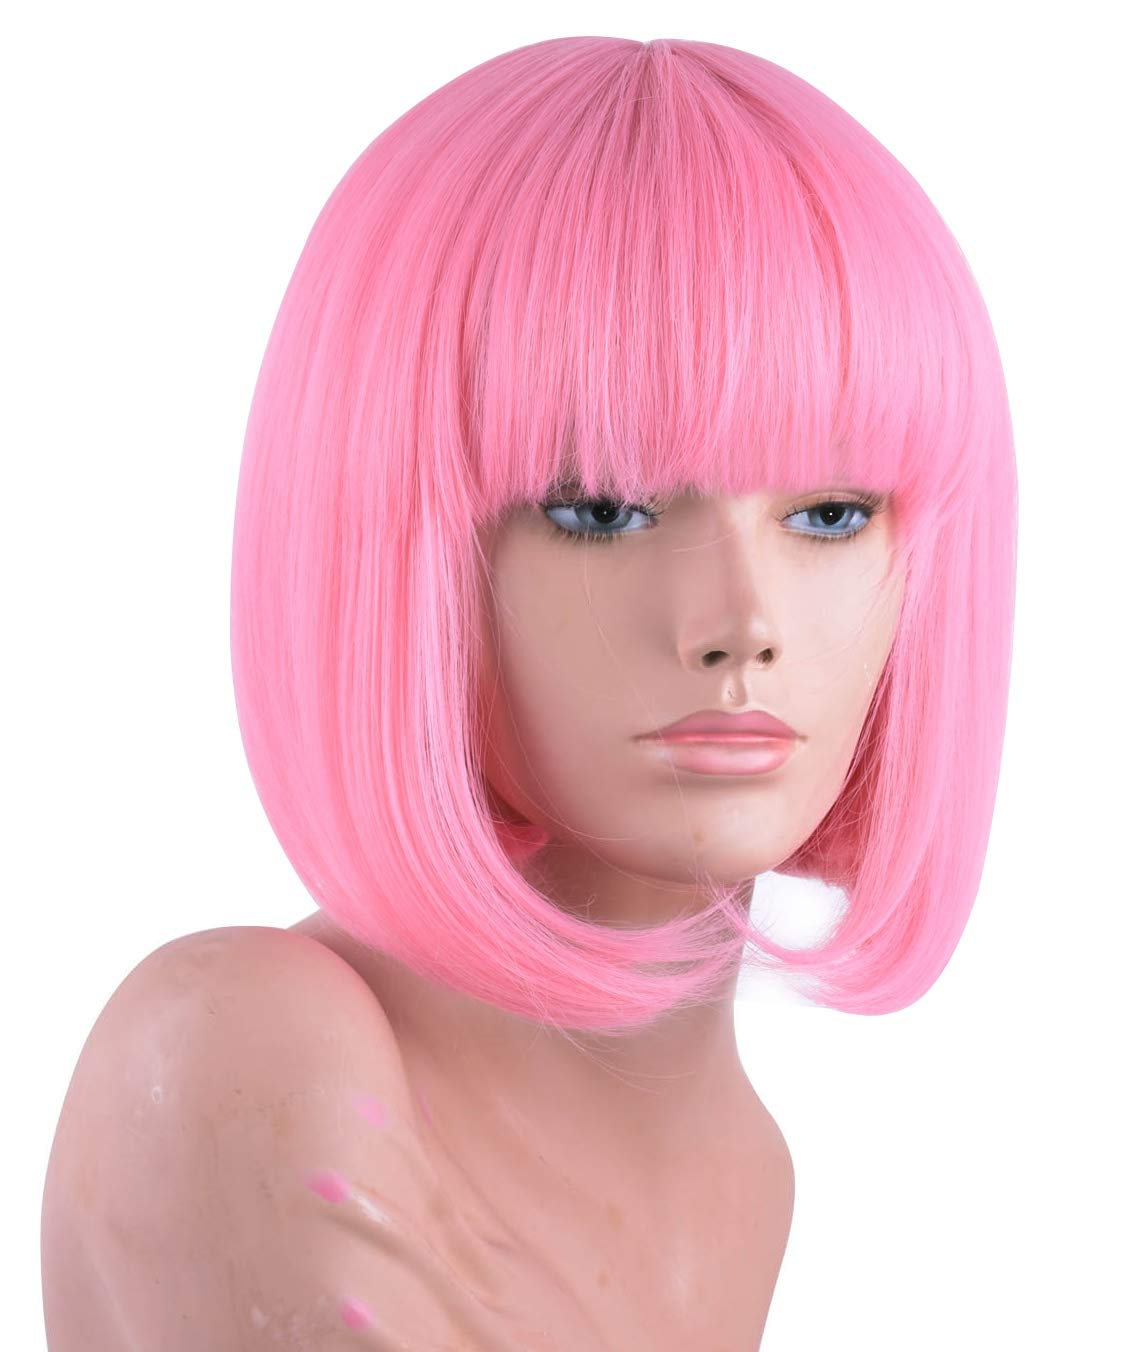 Annivia Pink Short Bob Wig with Bangs for Women 12'' Heat Resistant Synthetic Straight Wigs with Bangs Halloween Cosplay Party Wig Natural As Real Hair (Pink) by Annivia